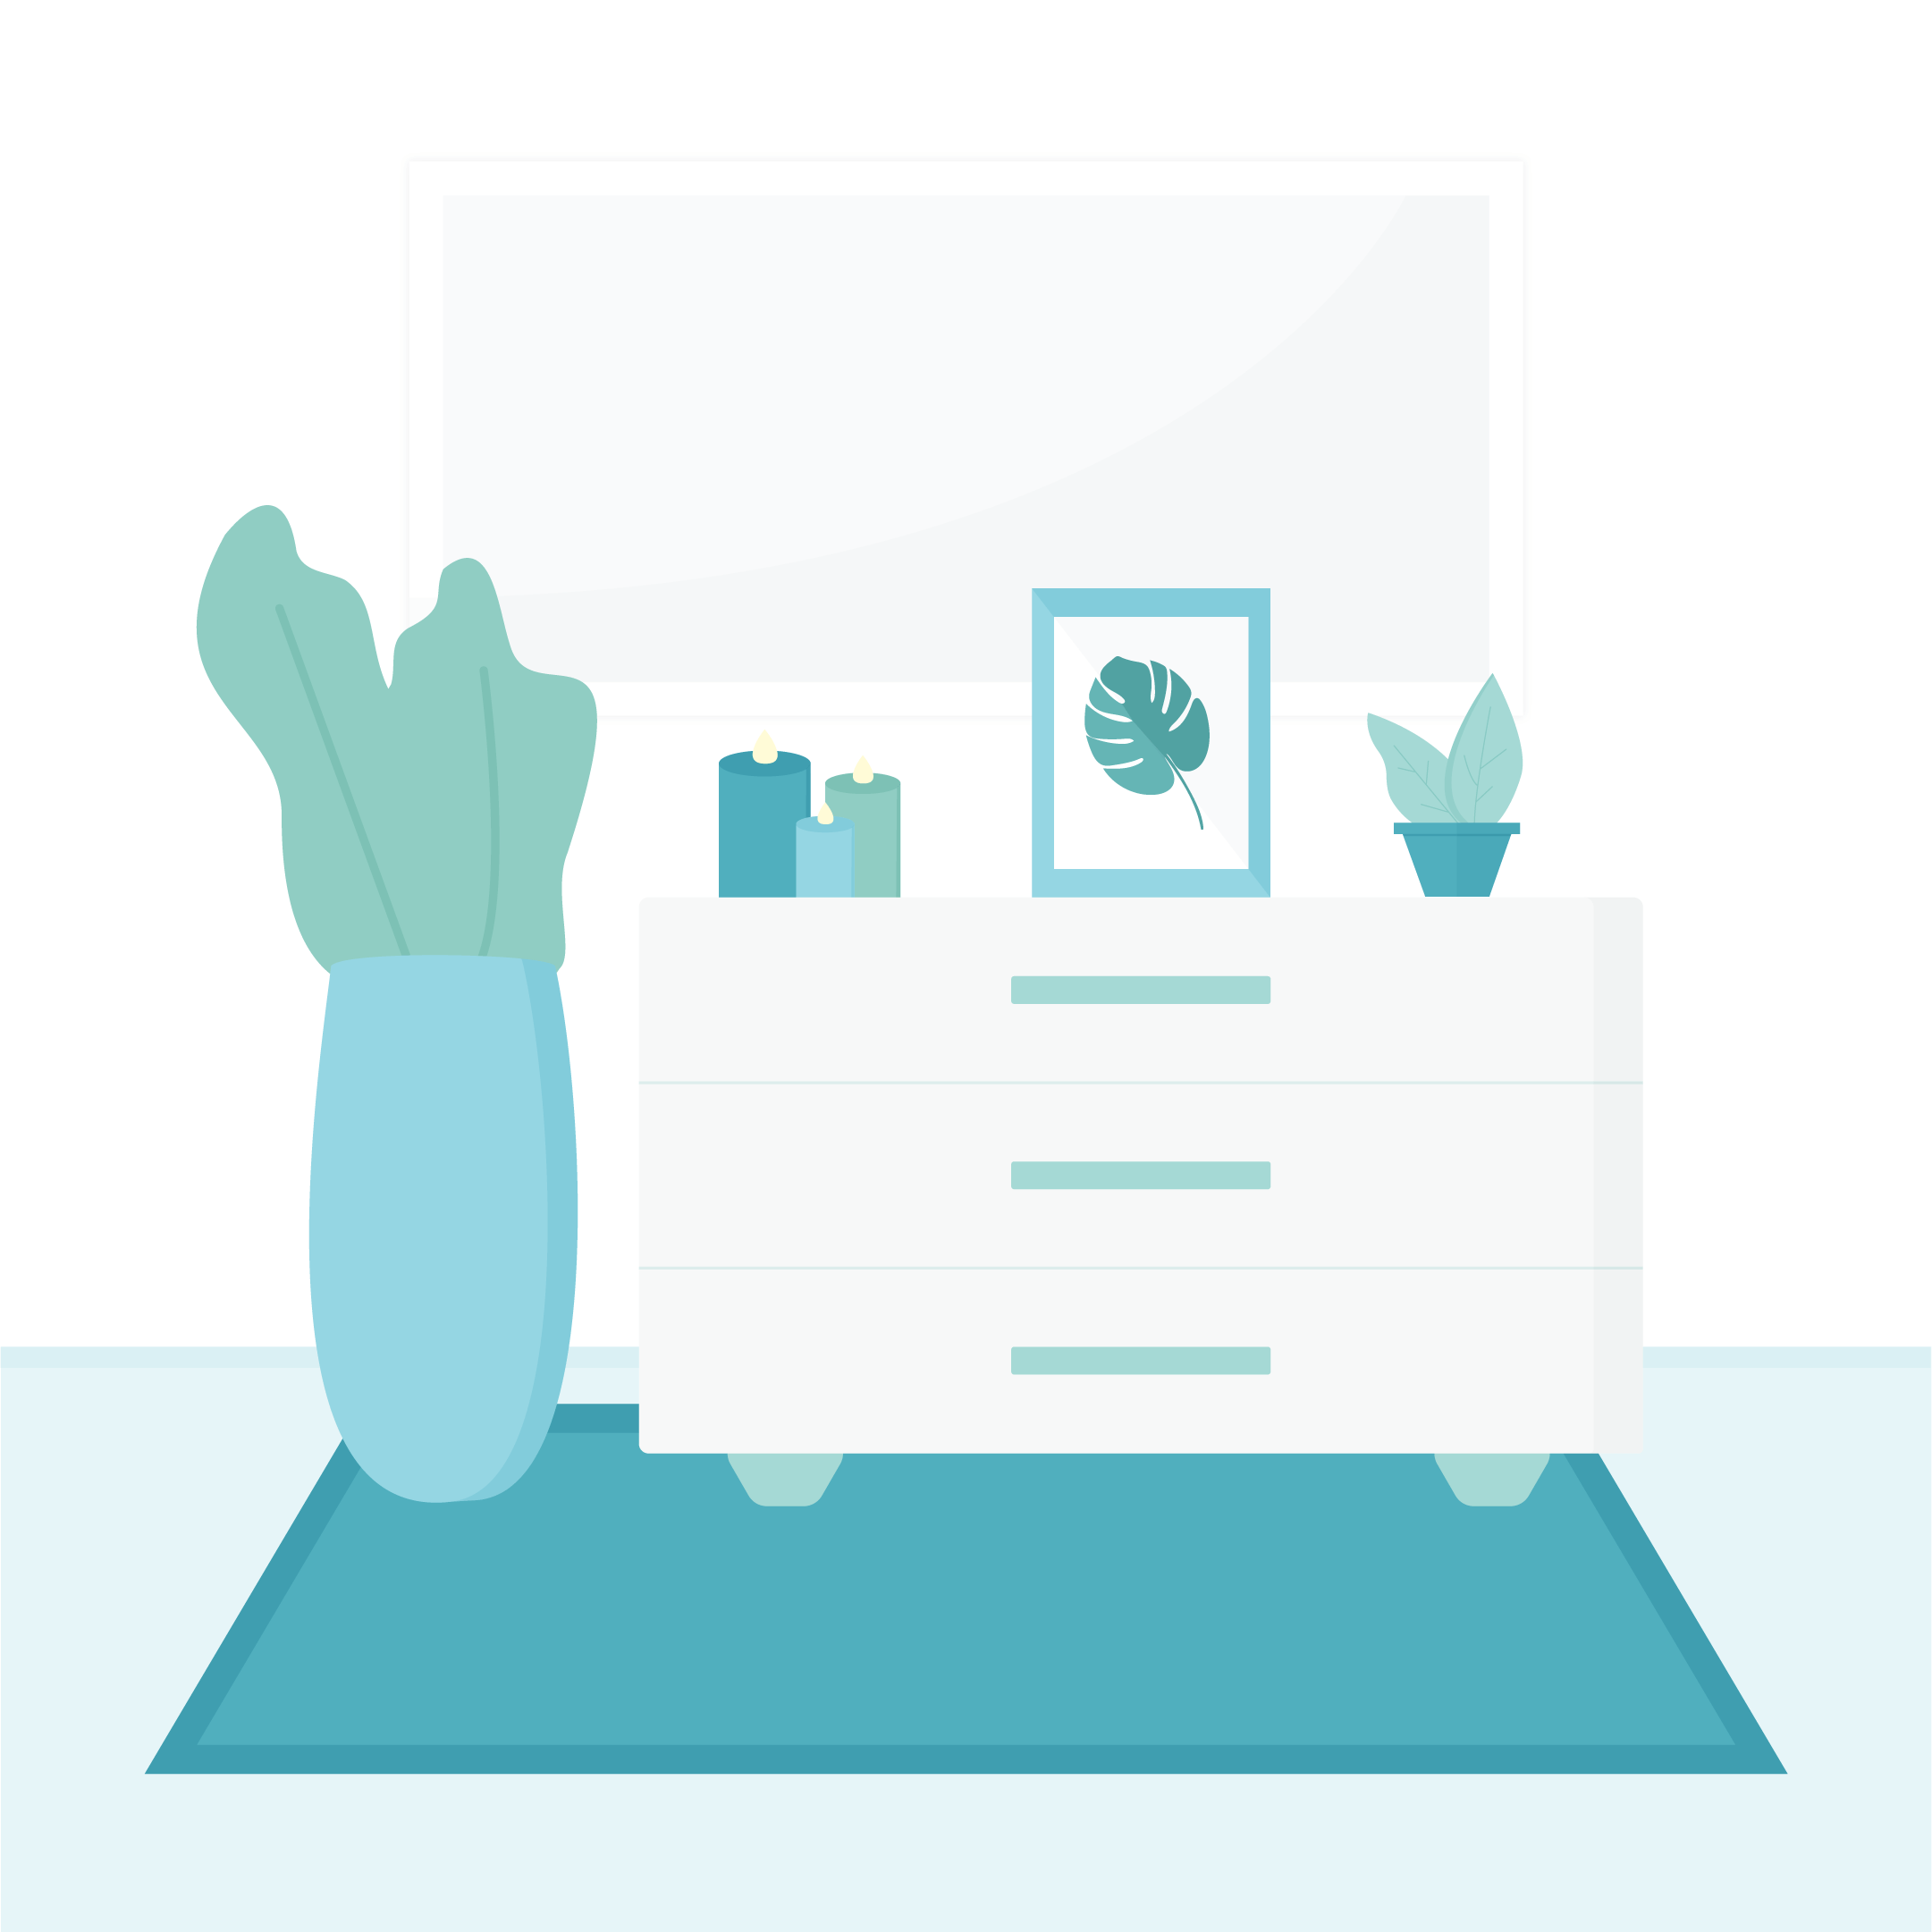 Vector scene illustration of a living room showcasing a chest of drawers, rug, candles, plants with a mirror in the background in flat design style